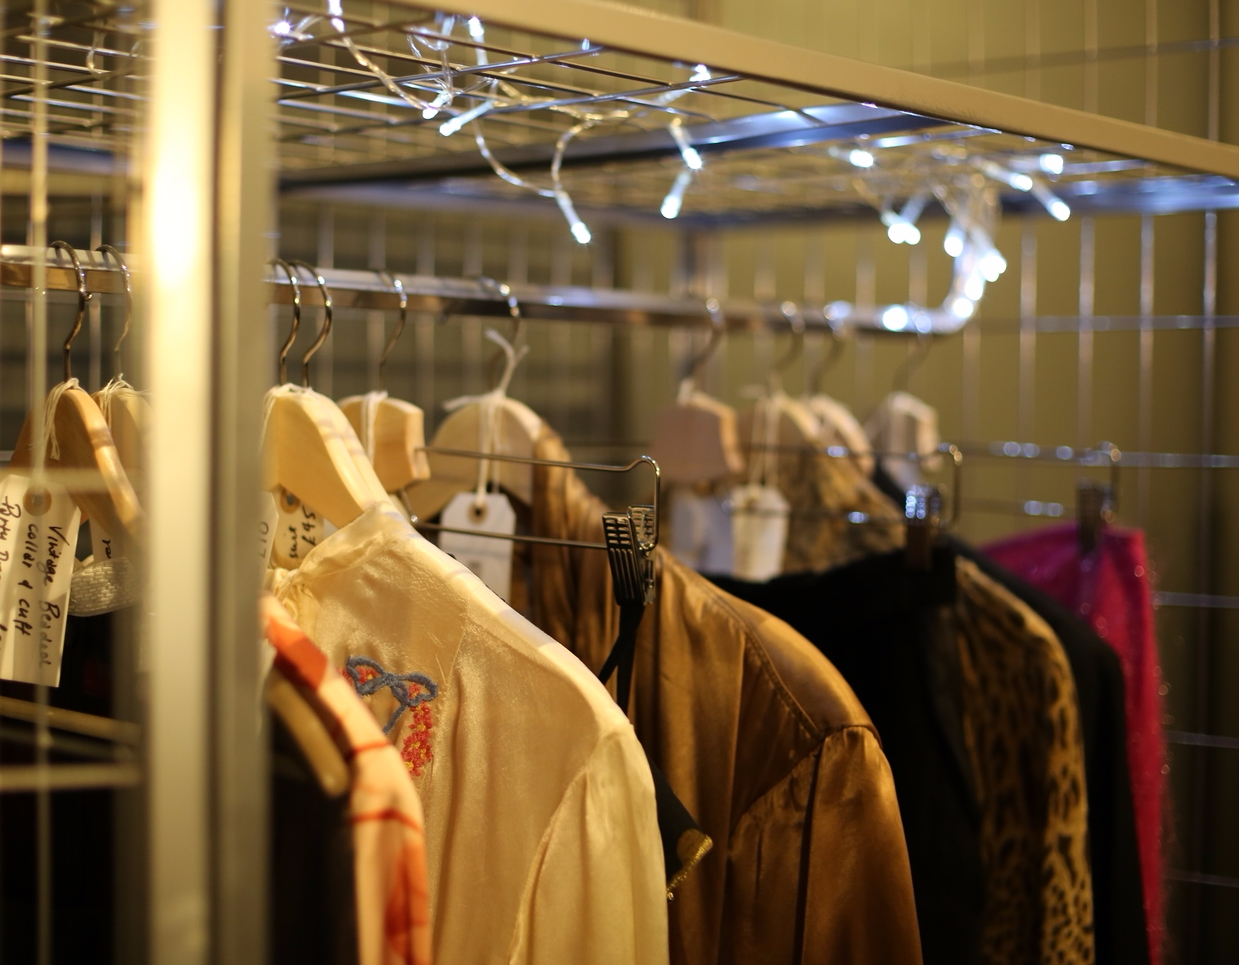 Omnis Clothes Lifestyle and gift shop in Brixton South London Club